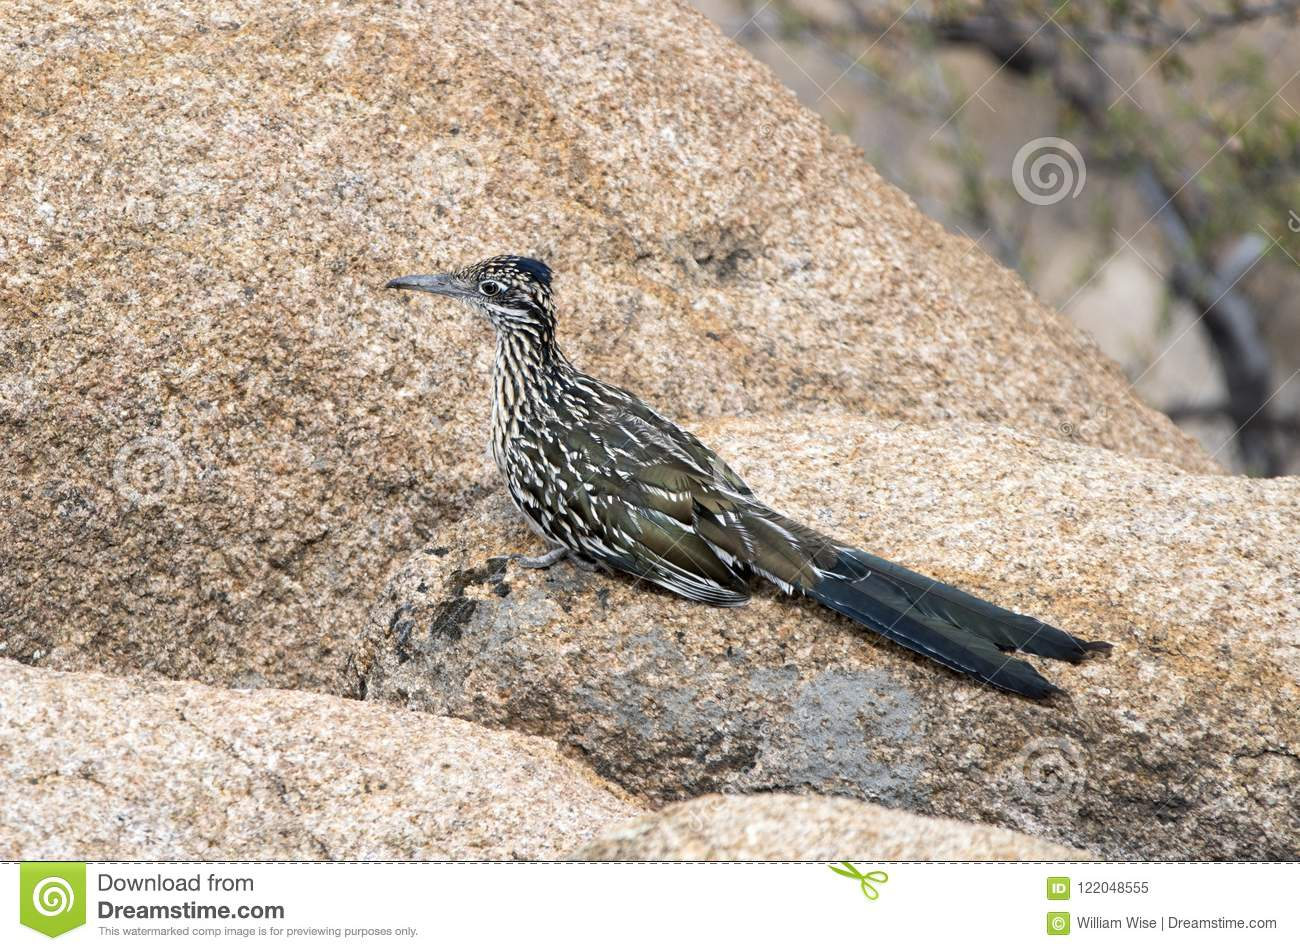 Greater Roadrunner bird, Lake Watson, Prescott Arizona USA